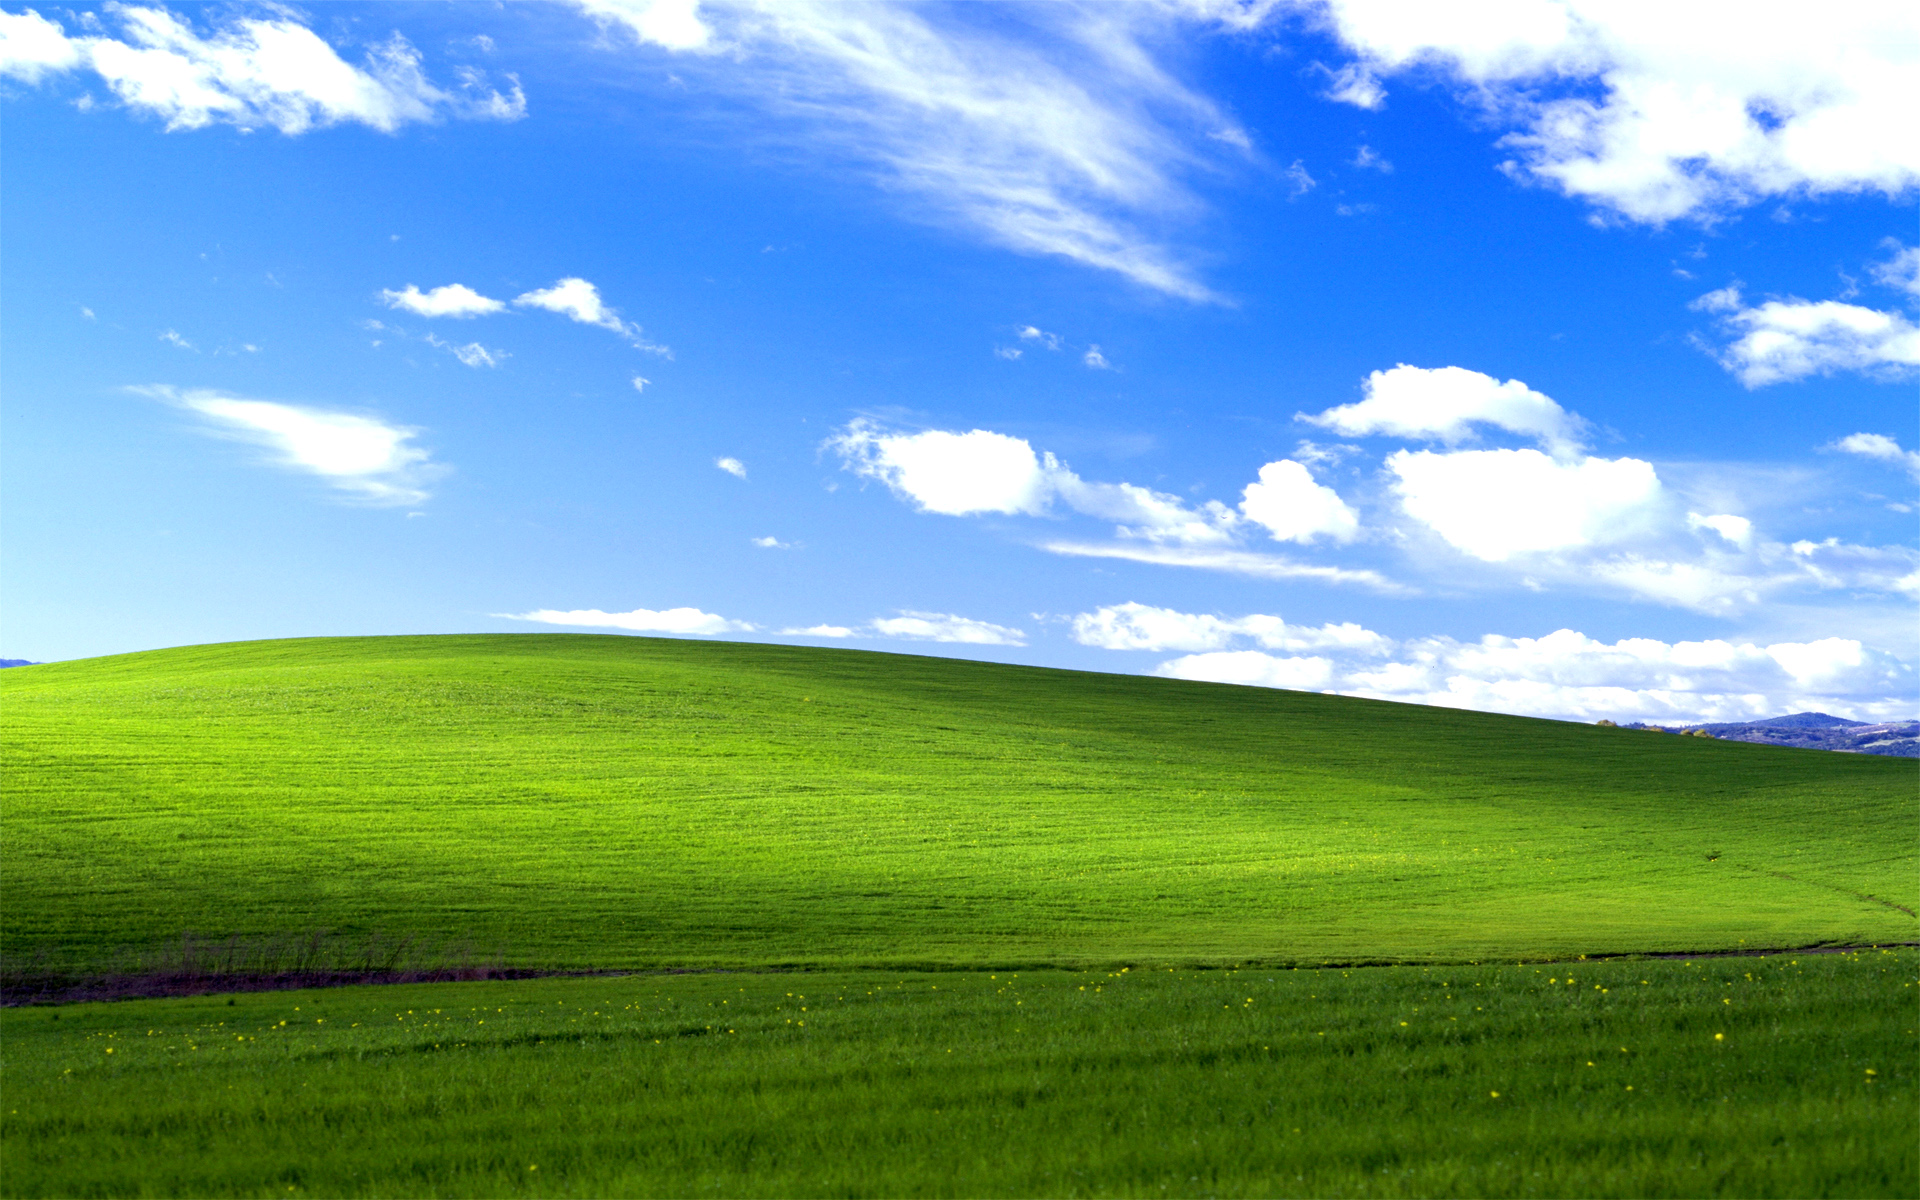 XP Wallpaper